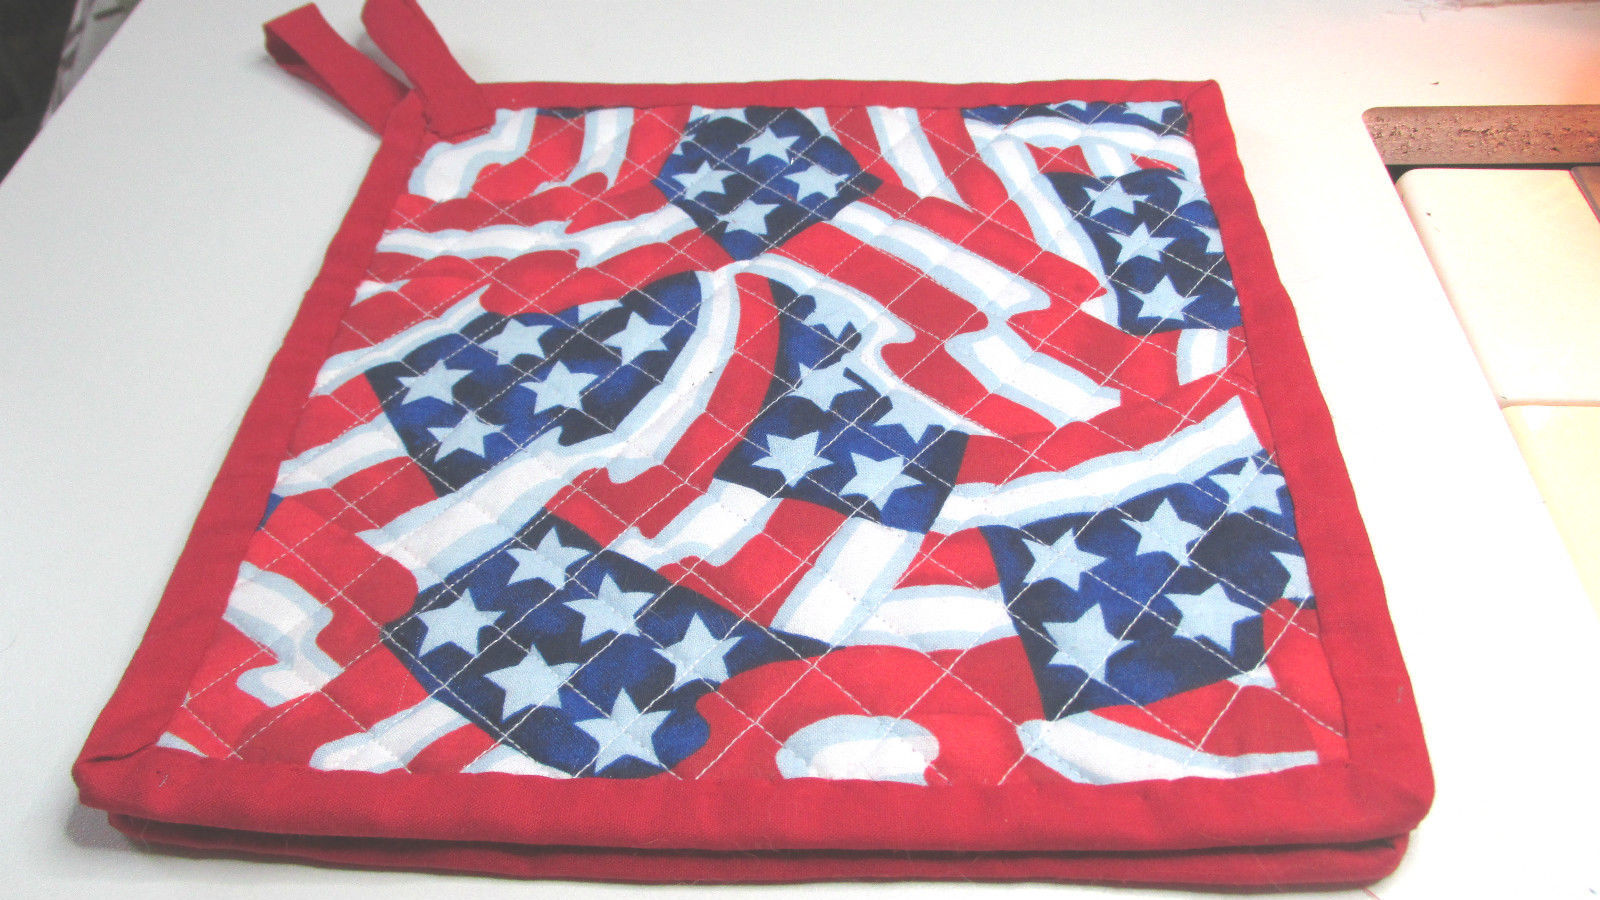 Quilted Potholders Handmade Lined with Insulbrite Flag Swirl